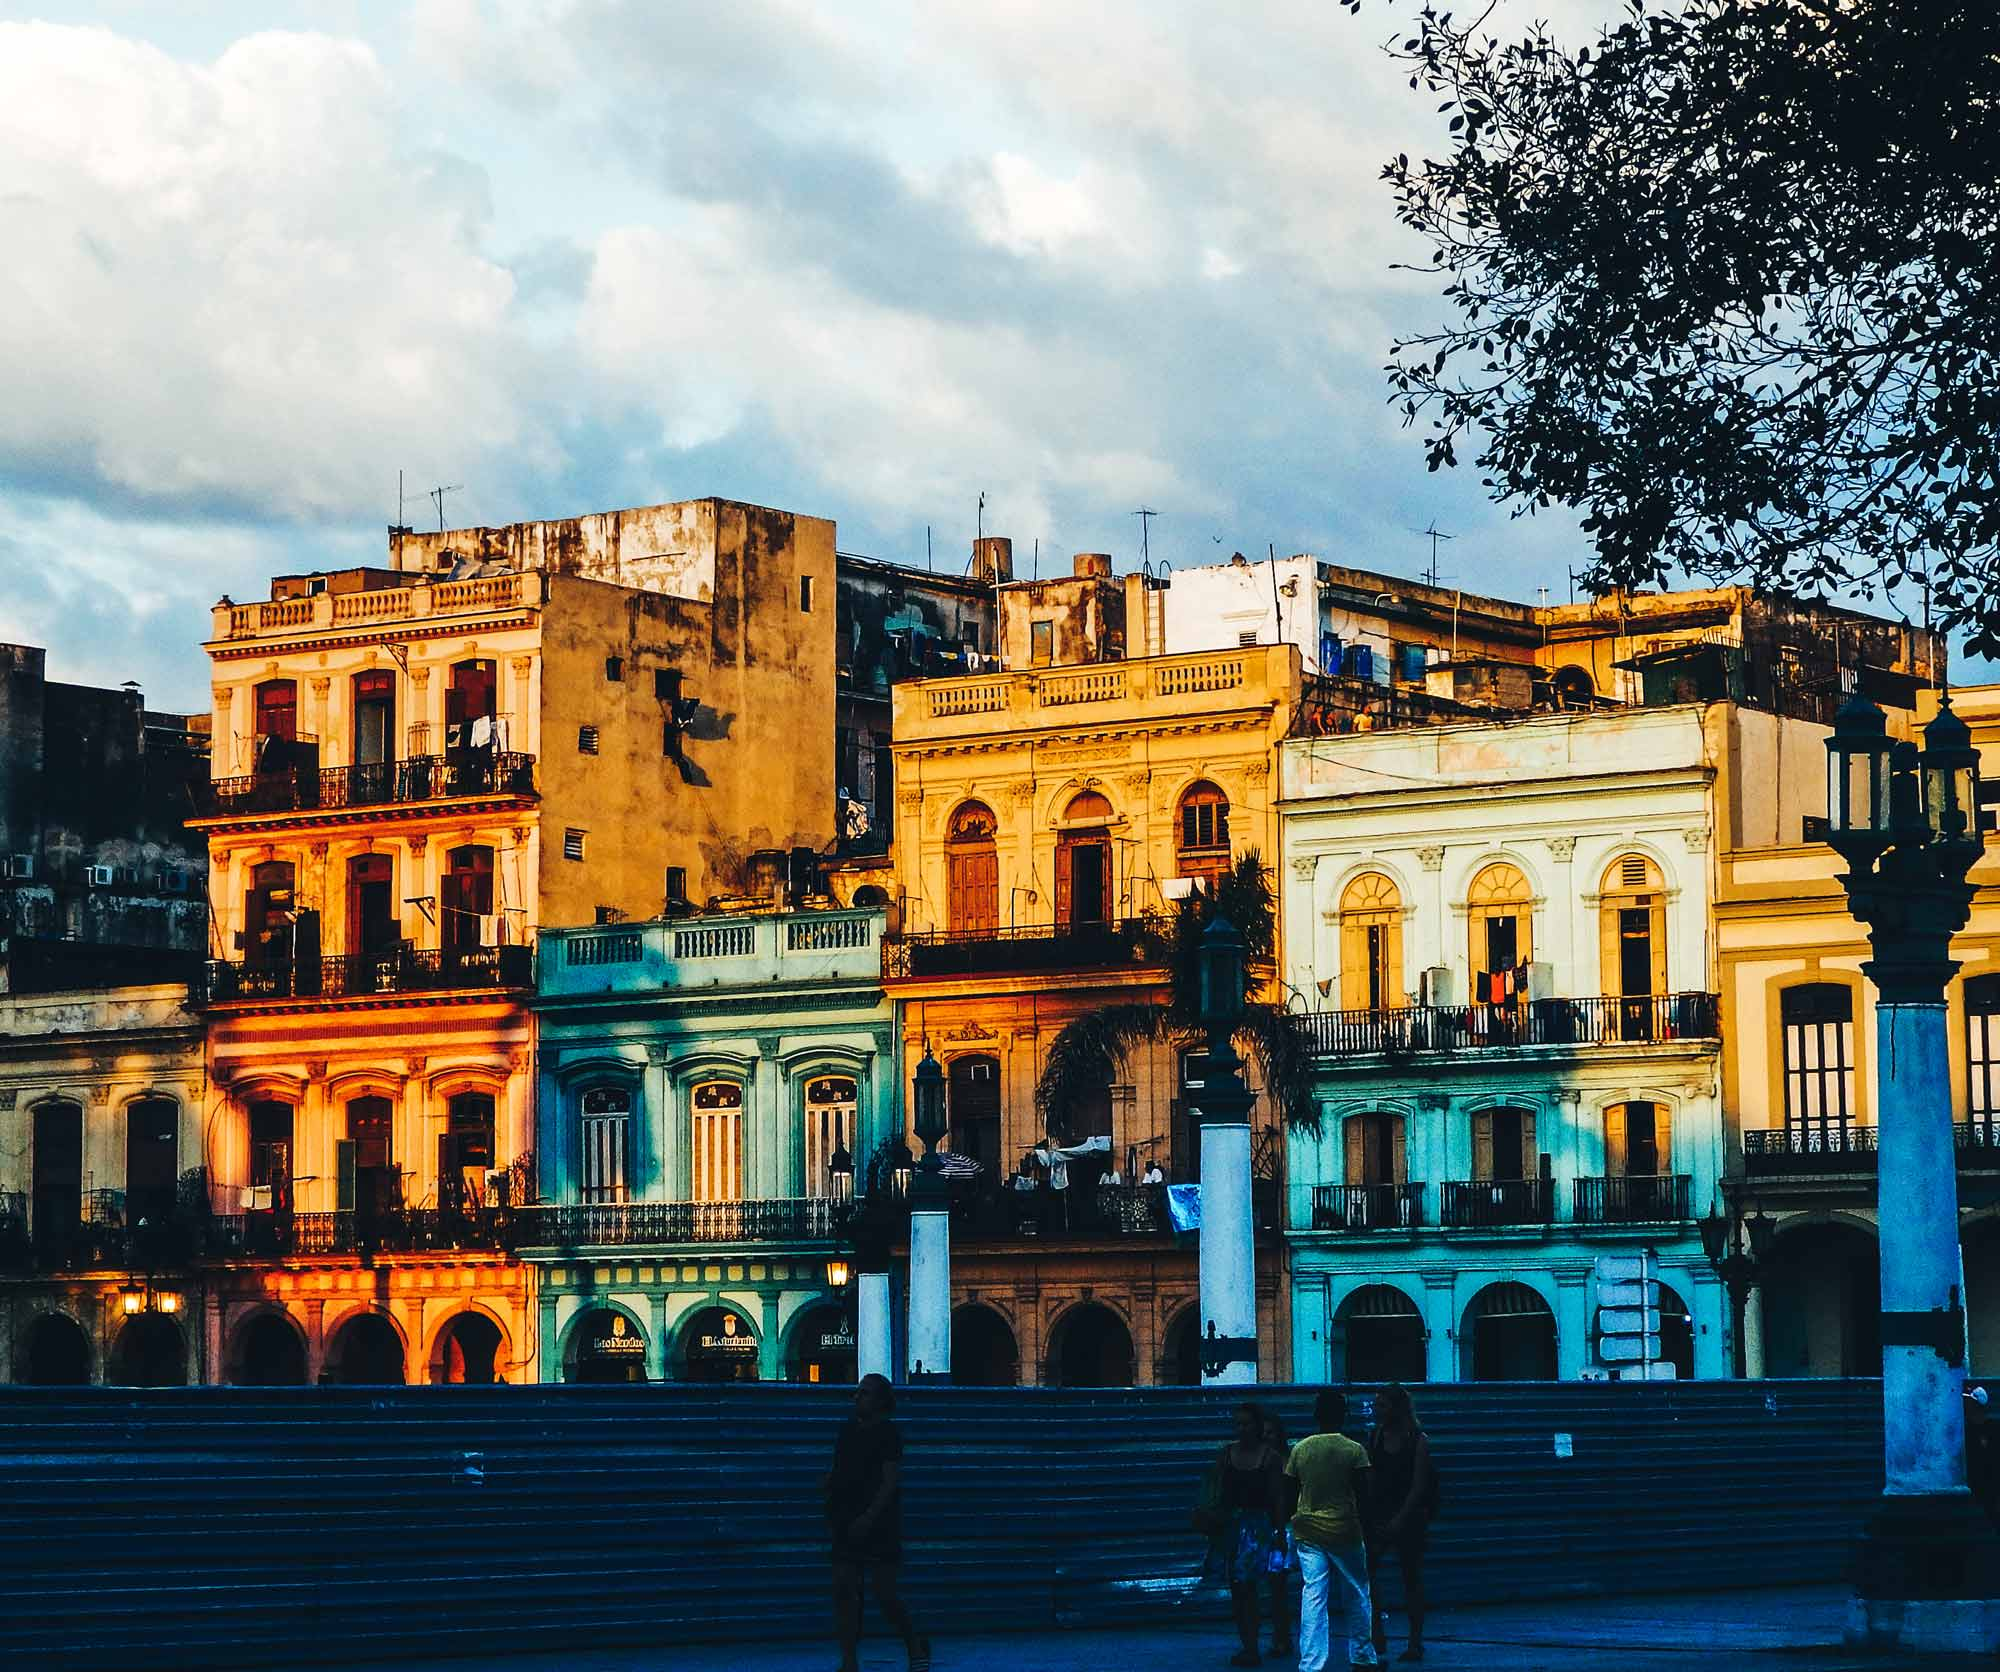 Here's why you'll feel at home backpacking Havana. A row of old Havana buildings in the town centre